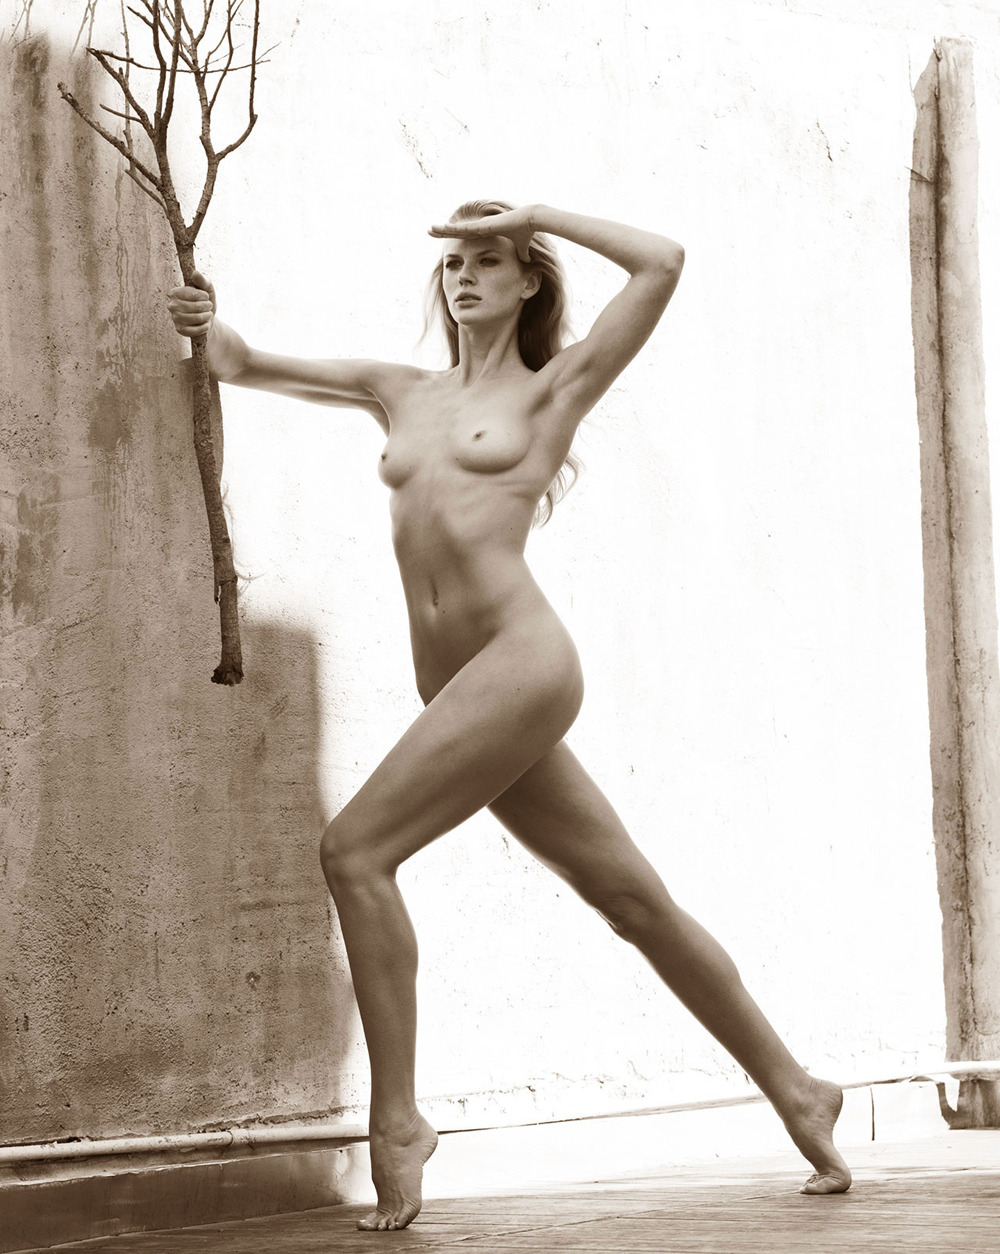 (via Anne Vyalitsyna, Andrej Pejic Are Classic Nudes in Mariano Vivanco Personal Project - 0- New Posts Fashion Editorials, Sensual Living - Fashion Editorials, Art & Sensual Living)